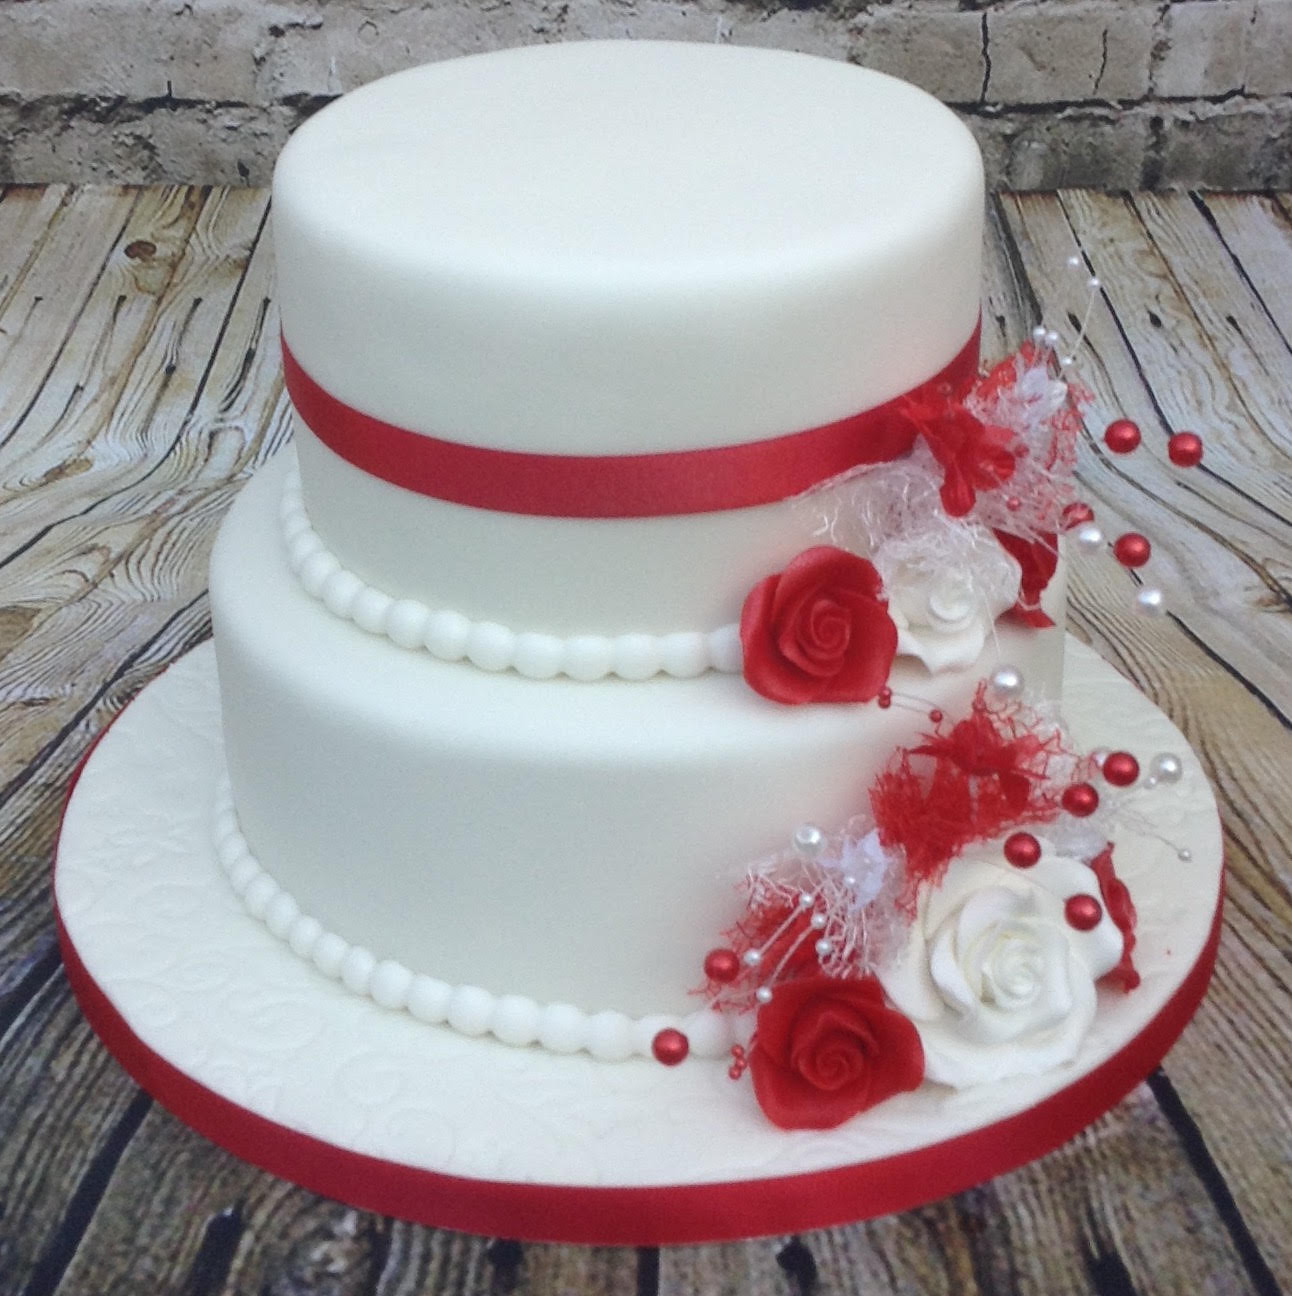 2 Tier Red White Themed Wedding Cake